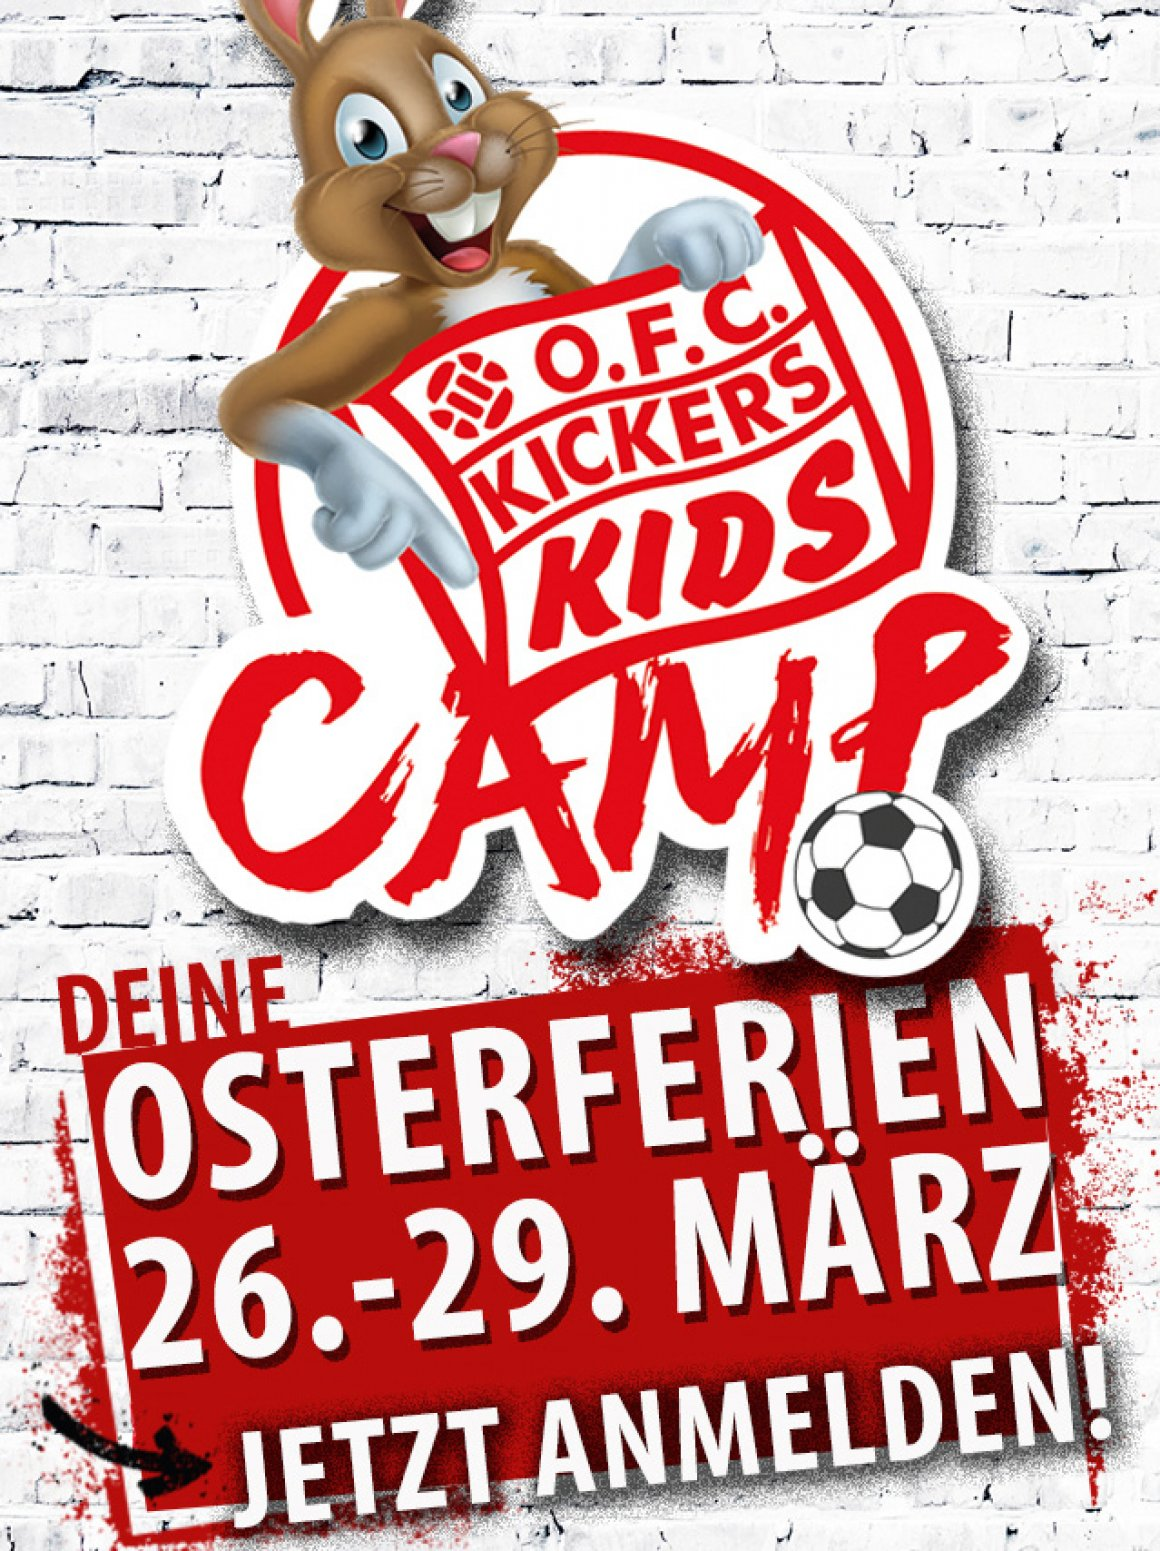 Kickers-Kids-Camp